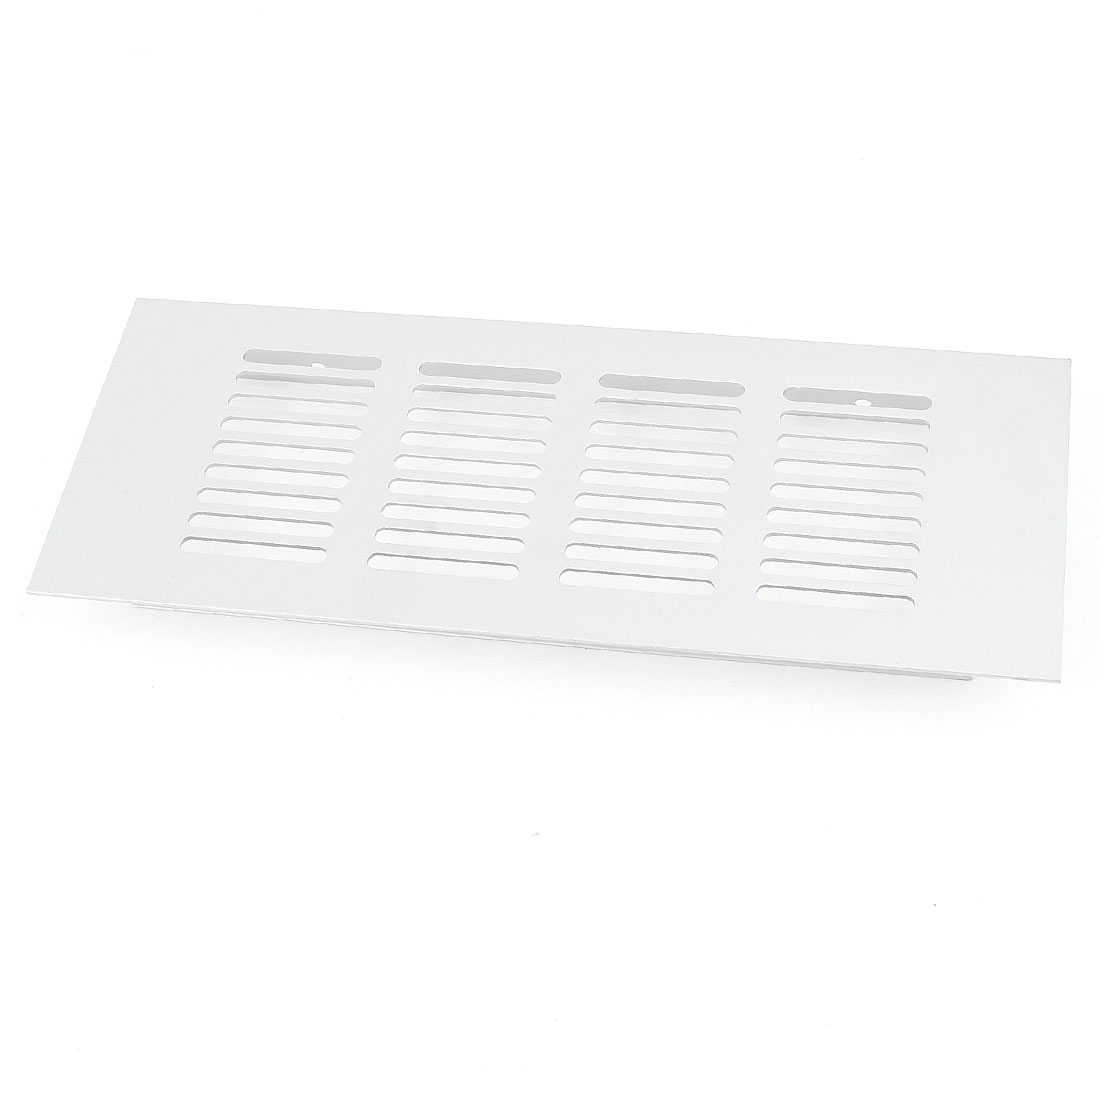 20cmx8cm Aluminum Alloy Air Vent Louver Cover Replacement for Cupboard Cabinet